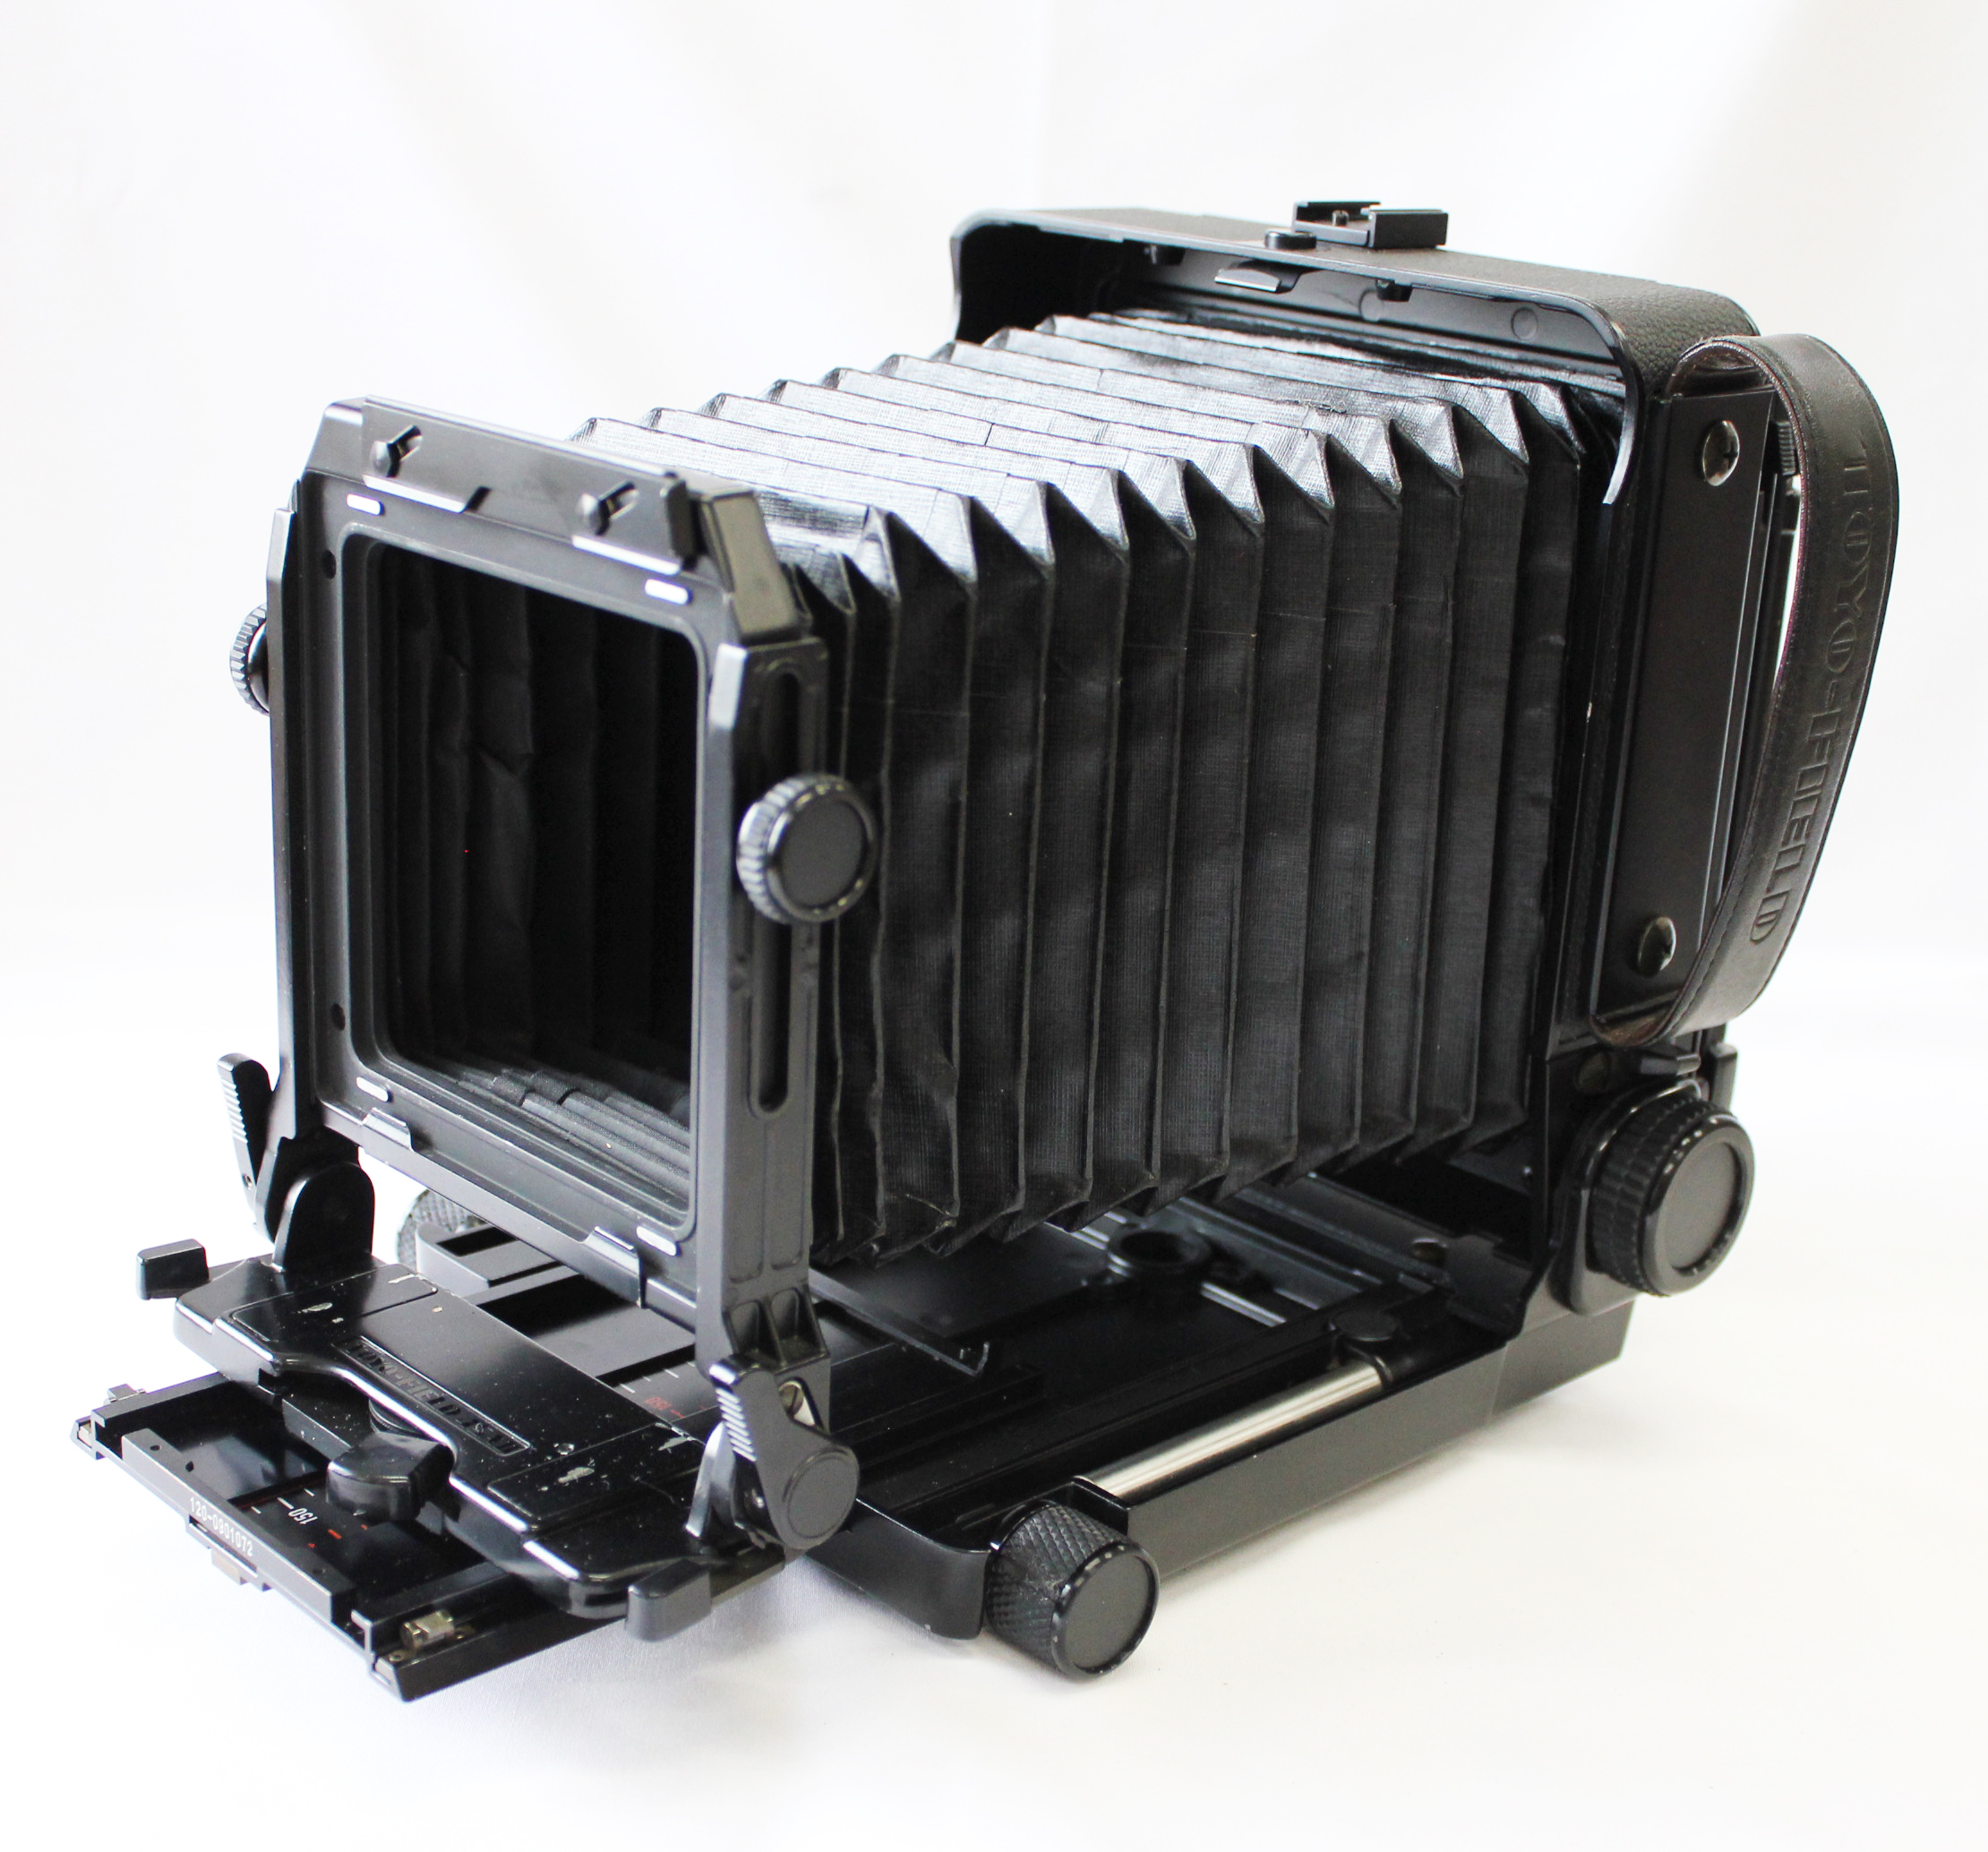 Japan Used Camera Shop | [Excellent+++++] Toyo Field 45A II 4x5 Large Format Camera from Japan